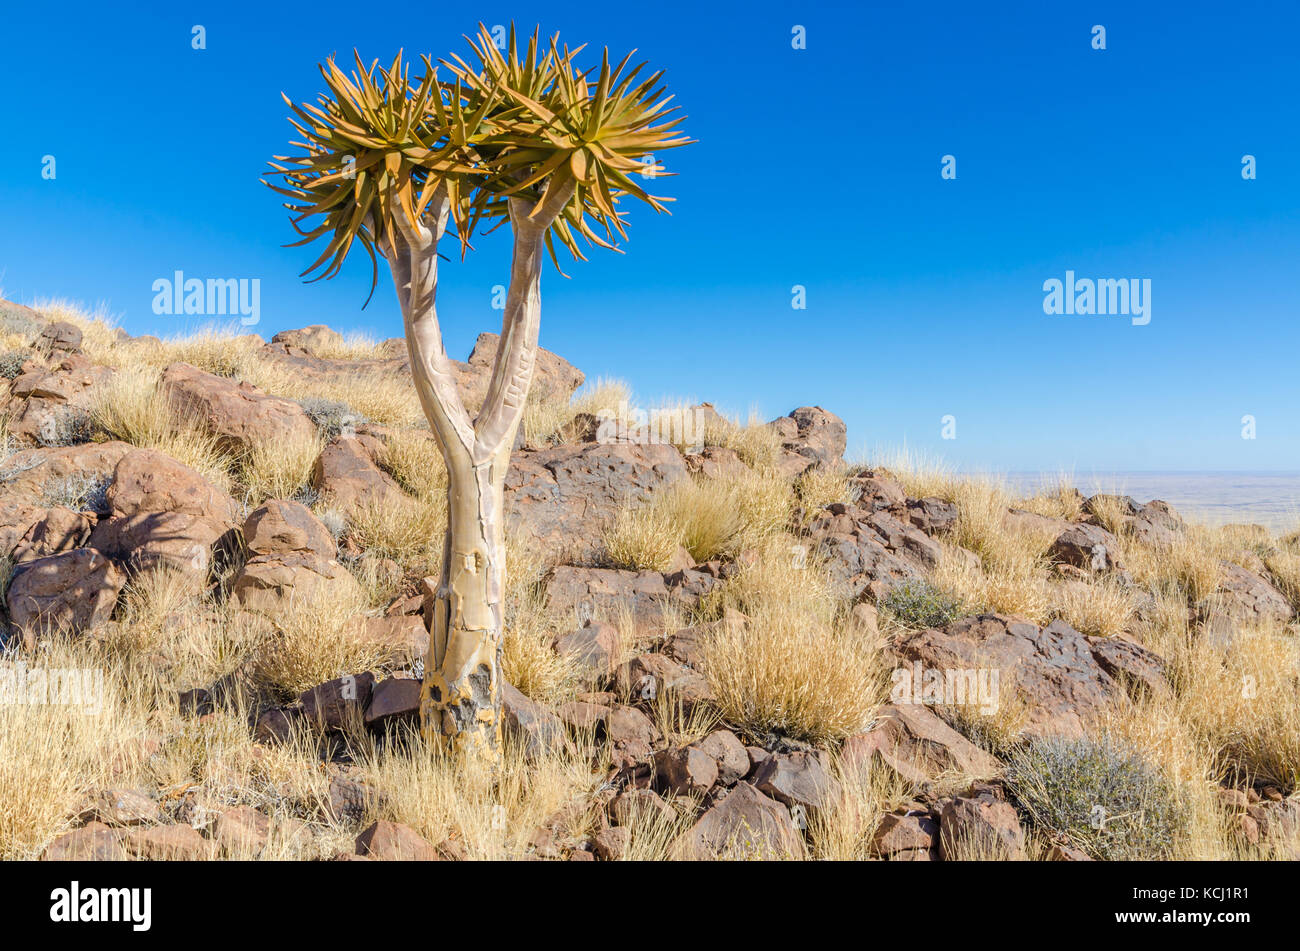 Beautiful exotic quiver tree in rocky and arid Namibian landscape, Namibia, Southern Africa - Stock Image